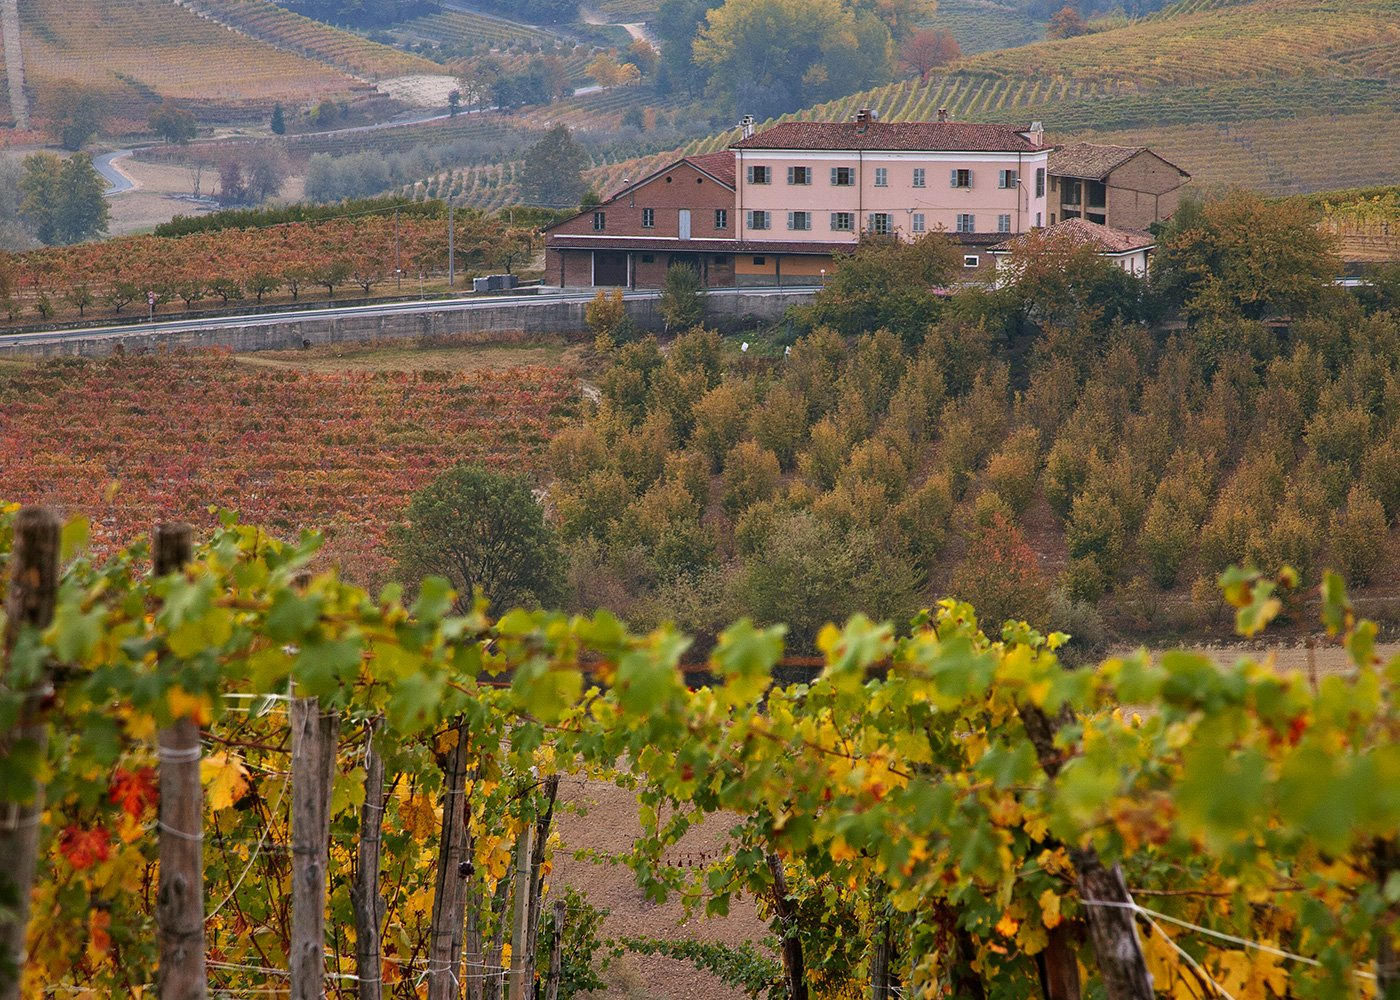 The Dolcetto d'Alba area